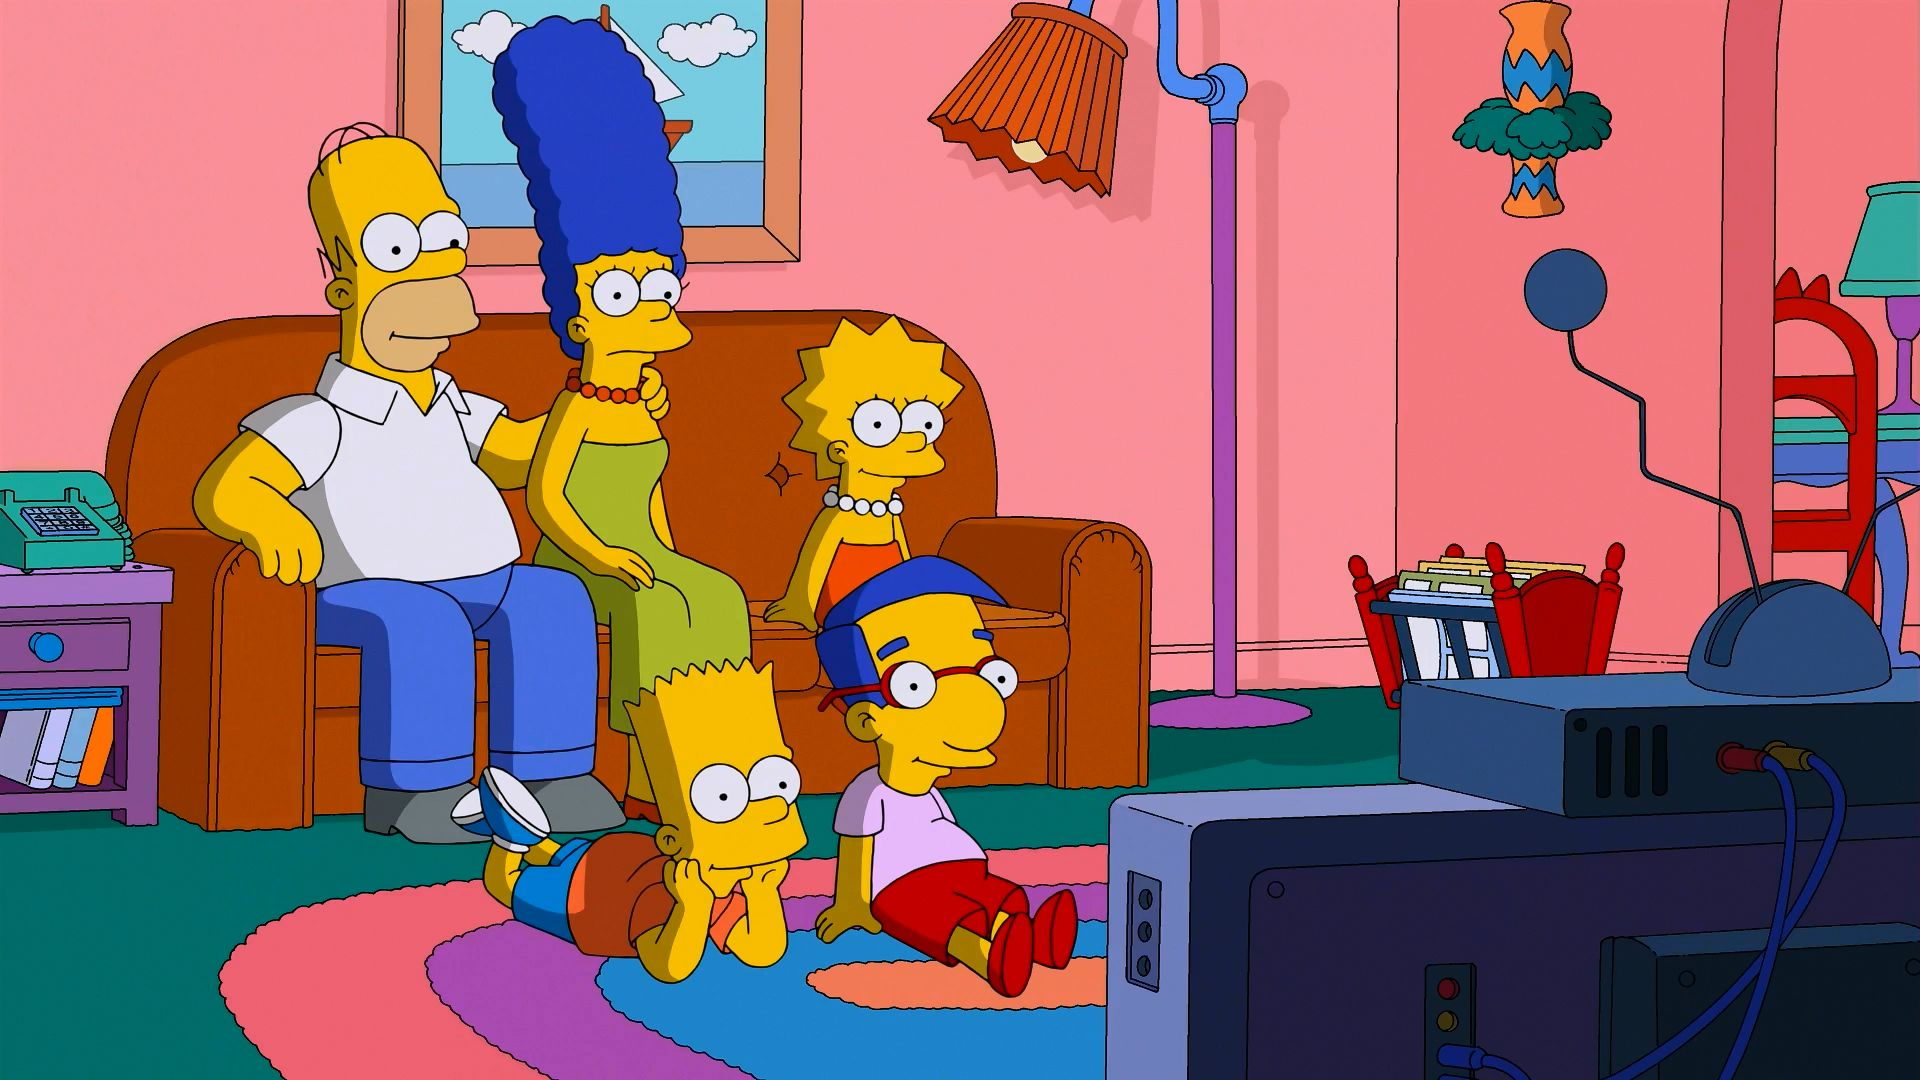 Depression Wallpaper Simpsons